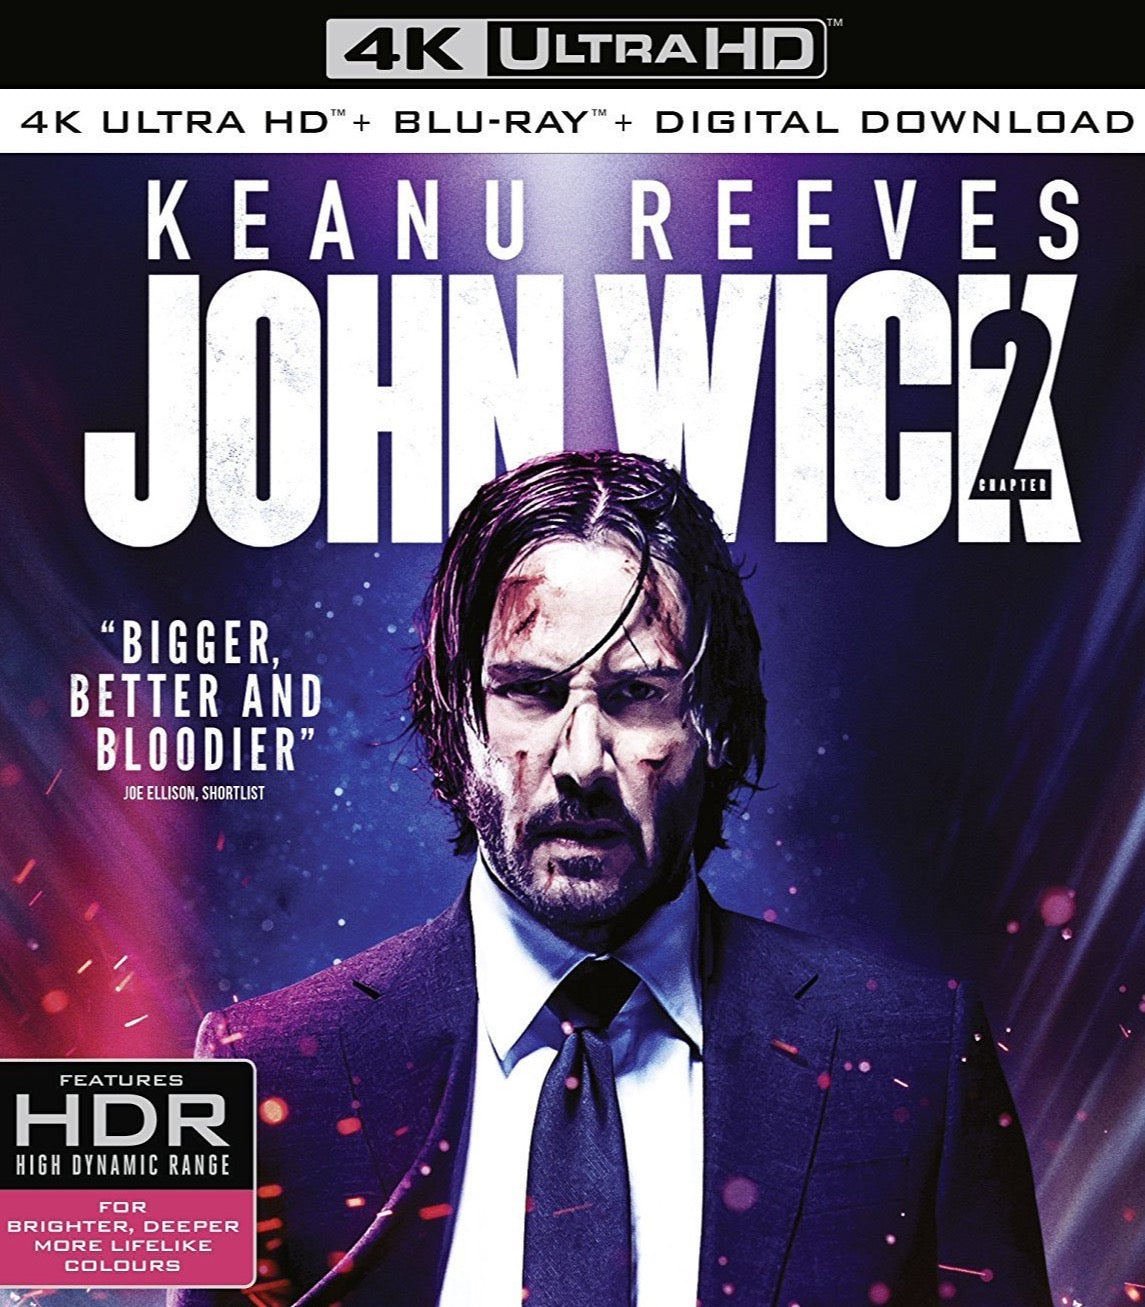 John Wick: Chapter Two (2017) Vudu 4K redemption only